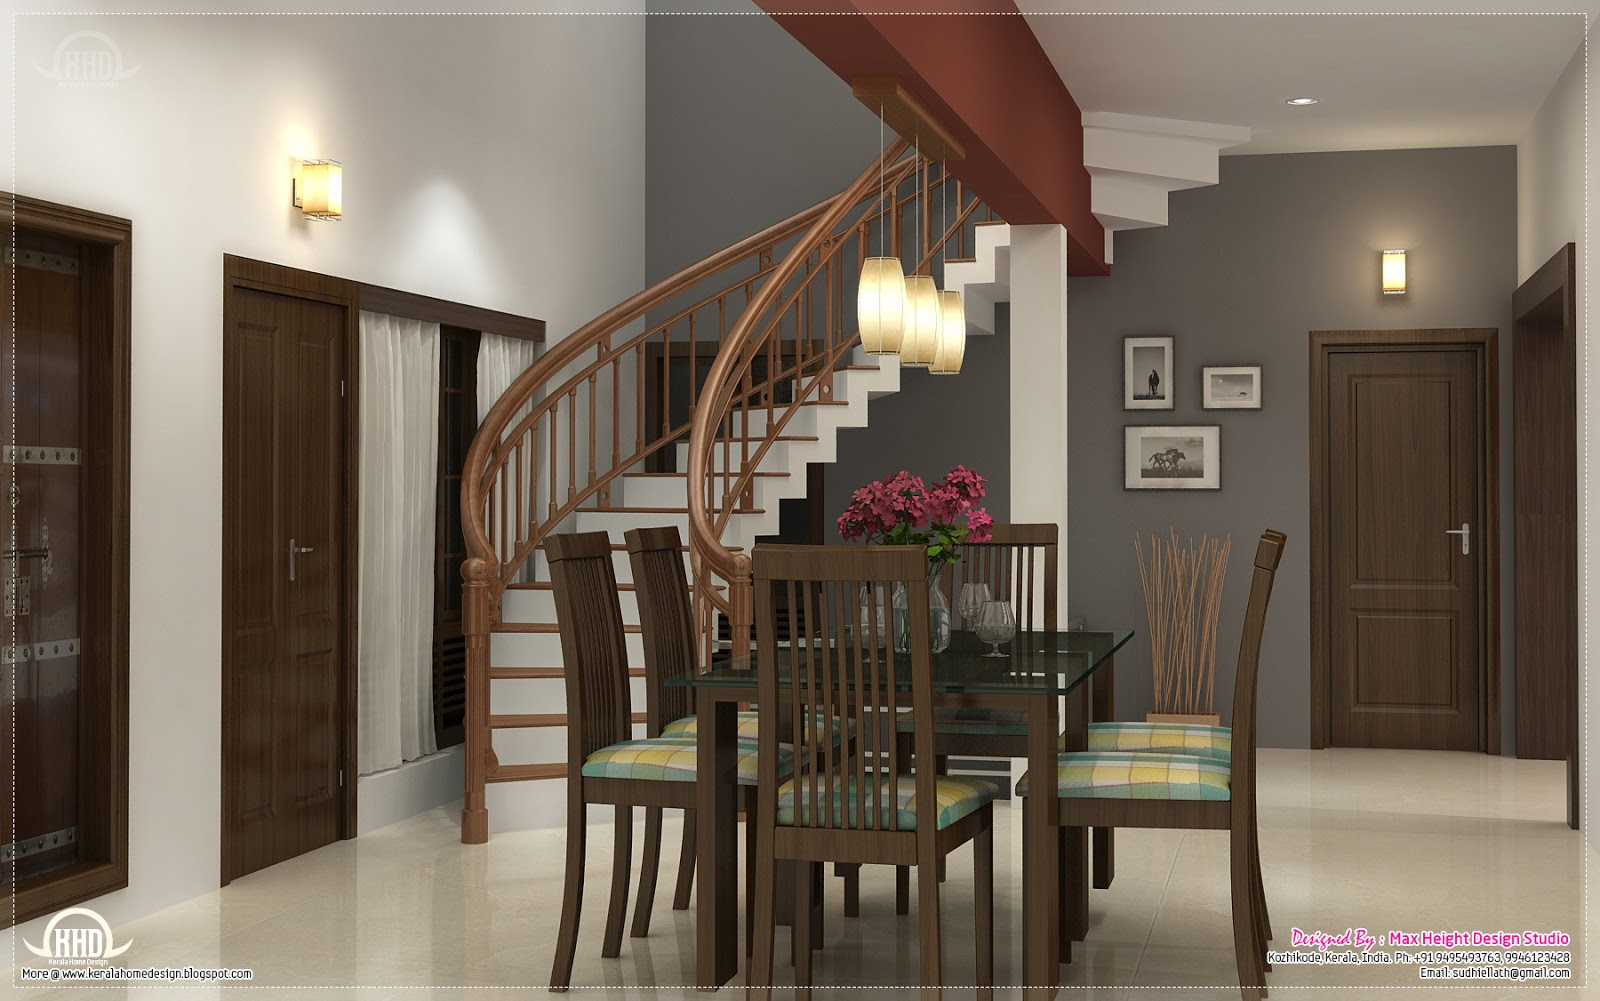 Home interior design ideas kerala home design and floor for Interior design of kitchen room in india